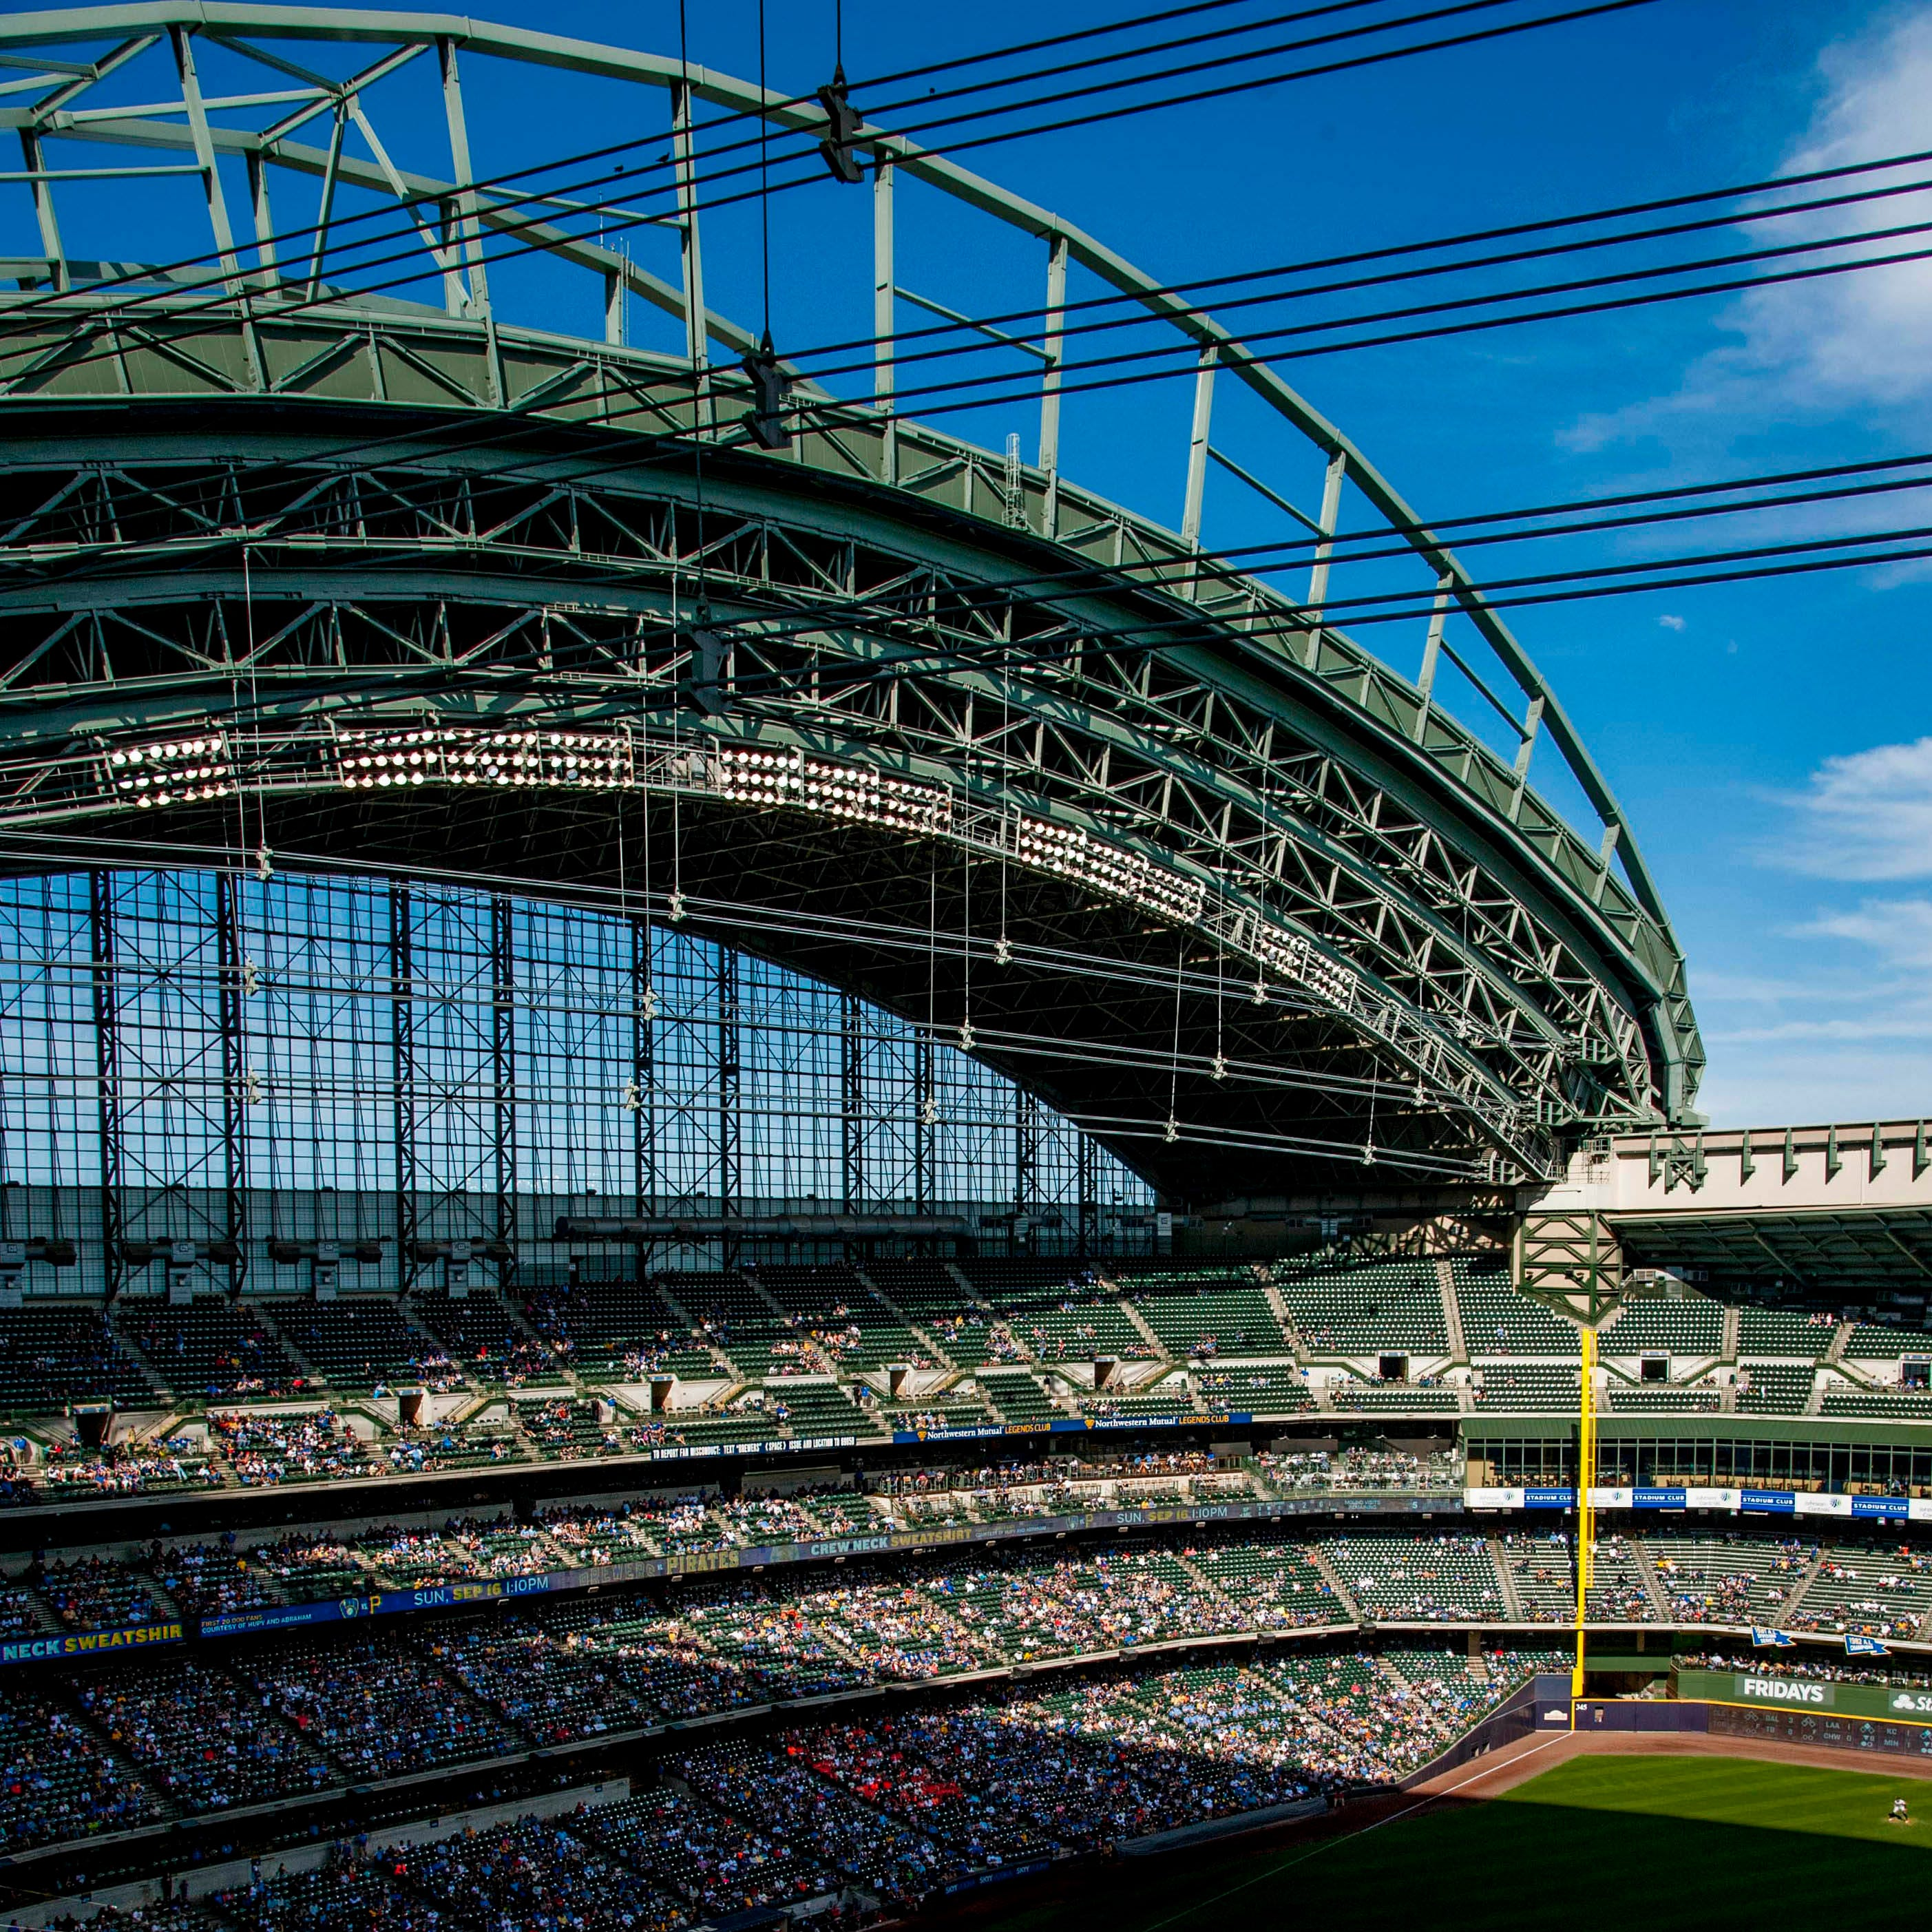 Milwaukee Brewers, in the post-season hunt, expect to draw 2.8 million fans to Miller Park